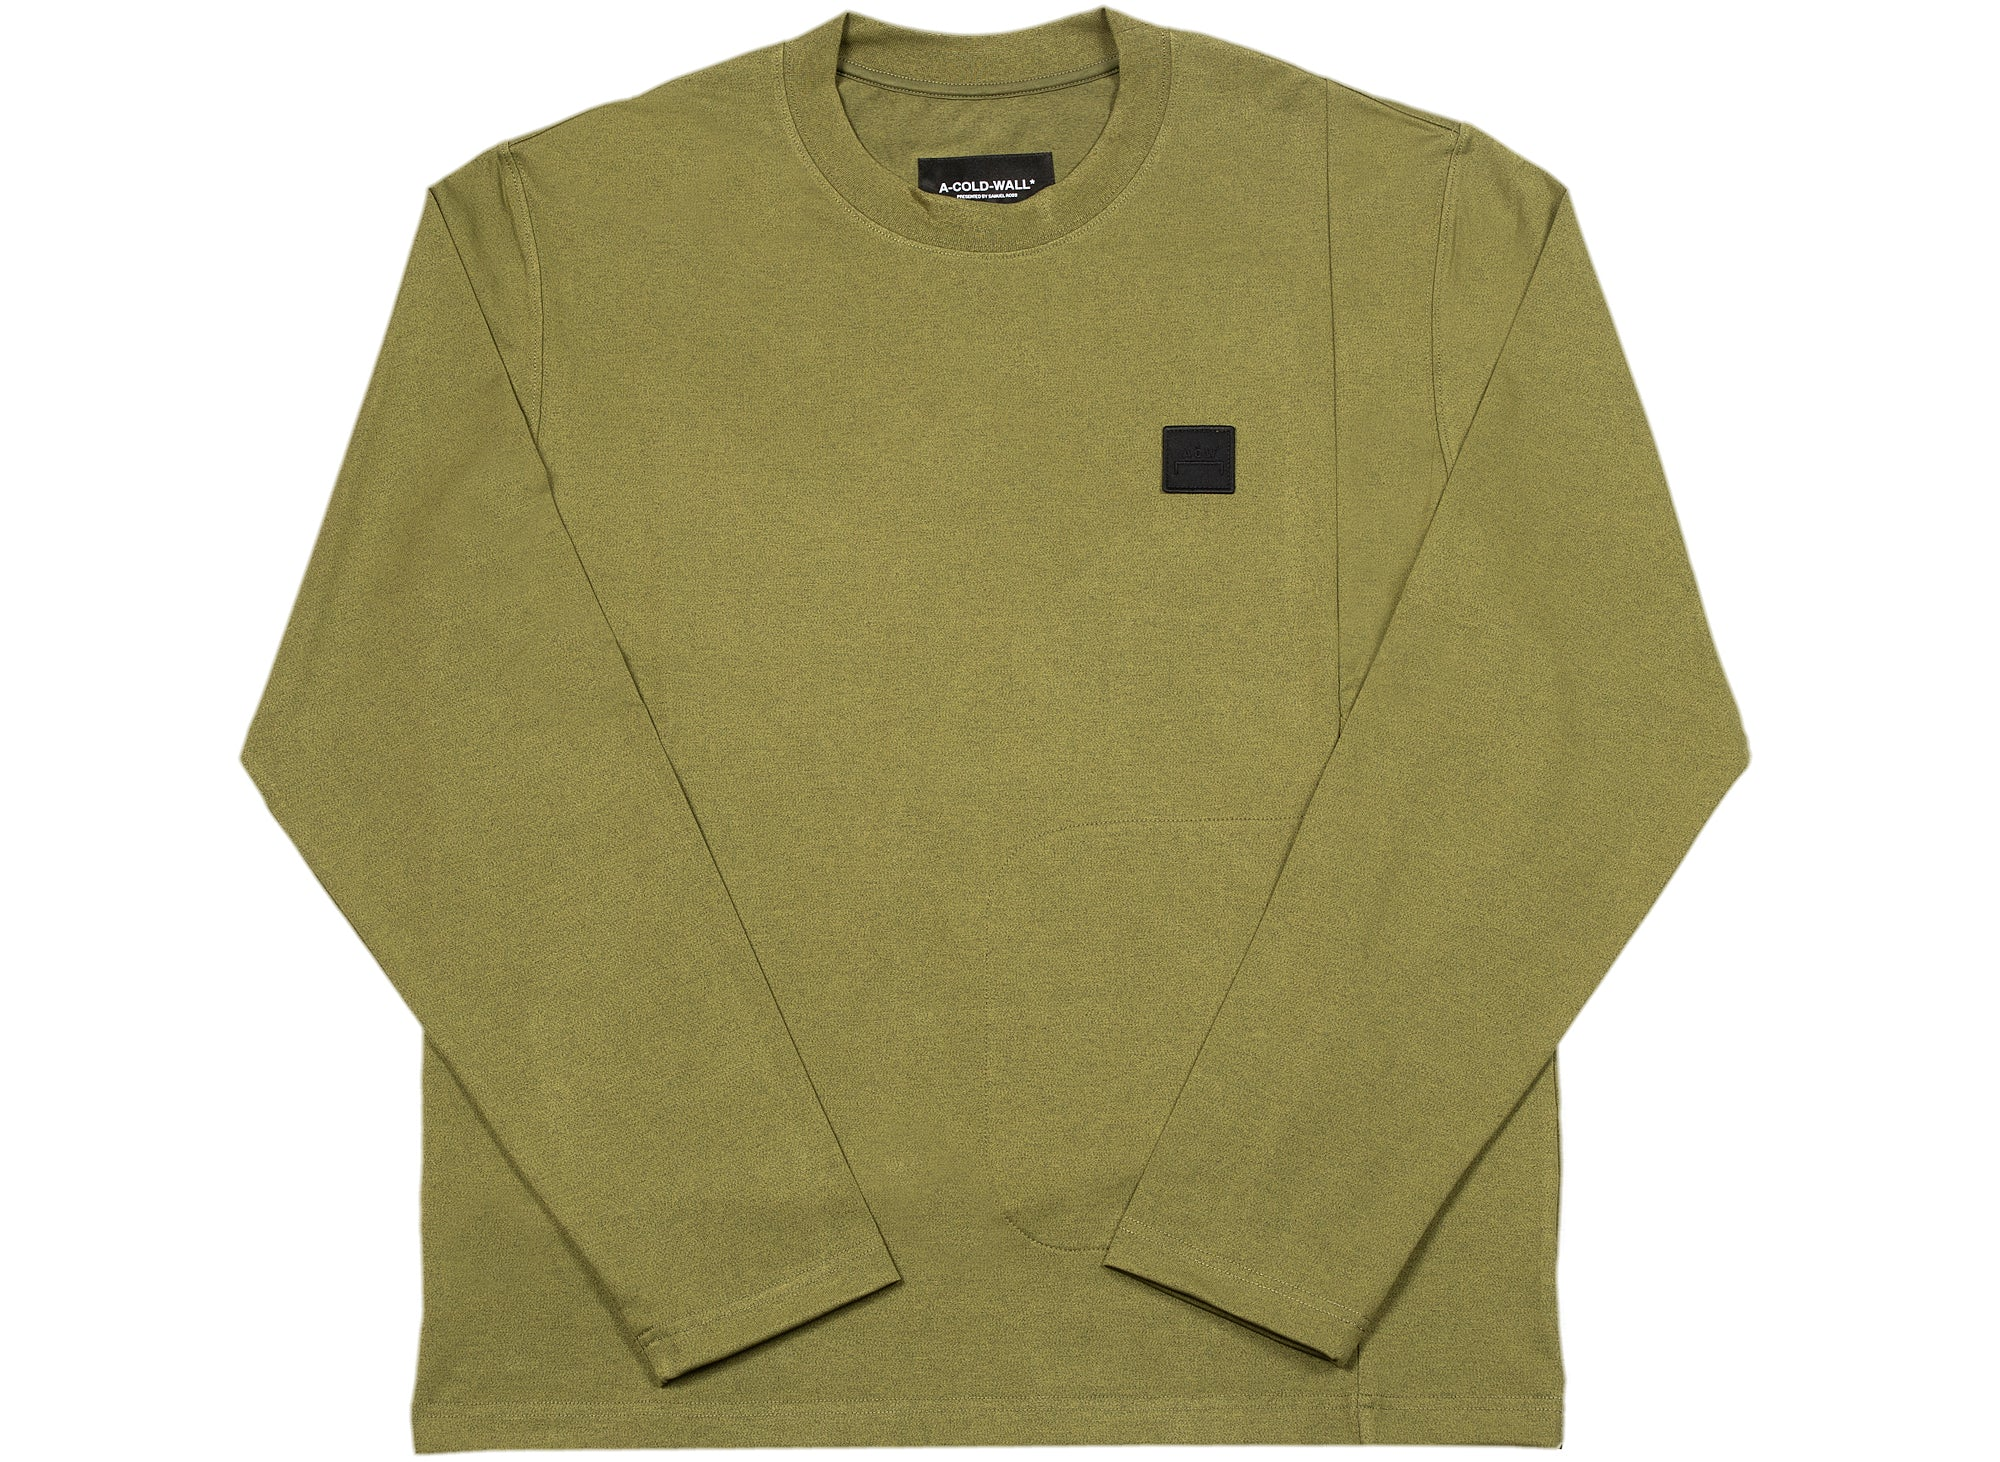 A-COLD-WALL* Knitted Utility Long Sleeve T-Shirt in Military Green xld